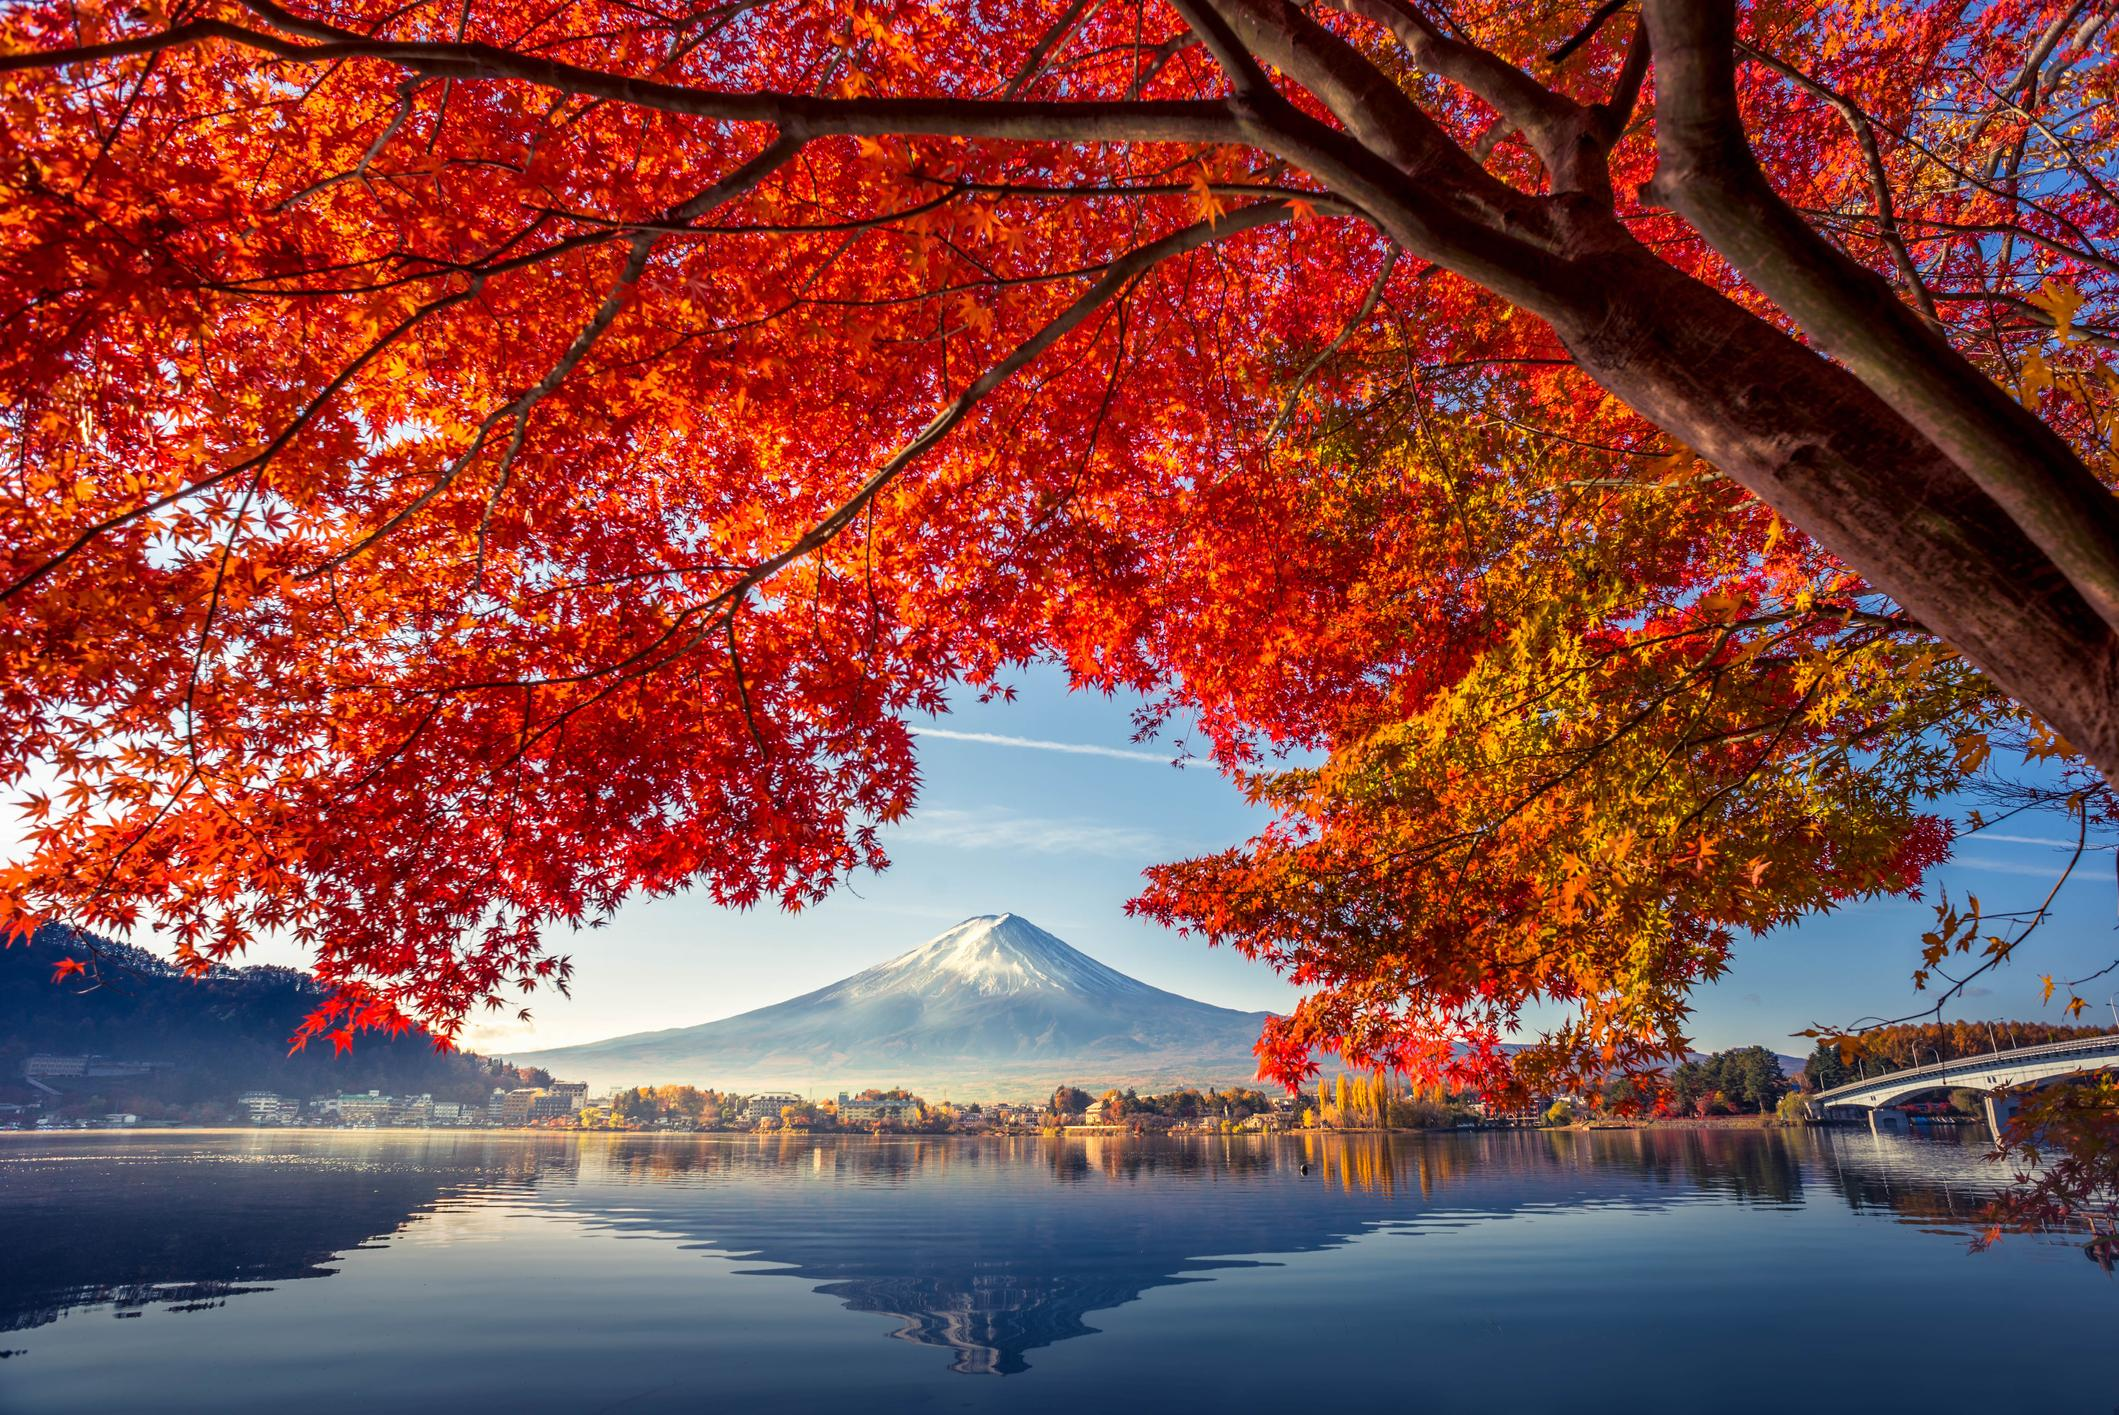 Lake Kawaguchiko with Mt. Fuji in Fall, Japan